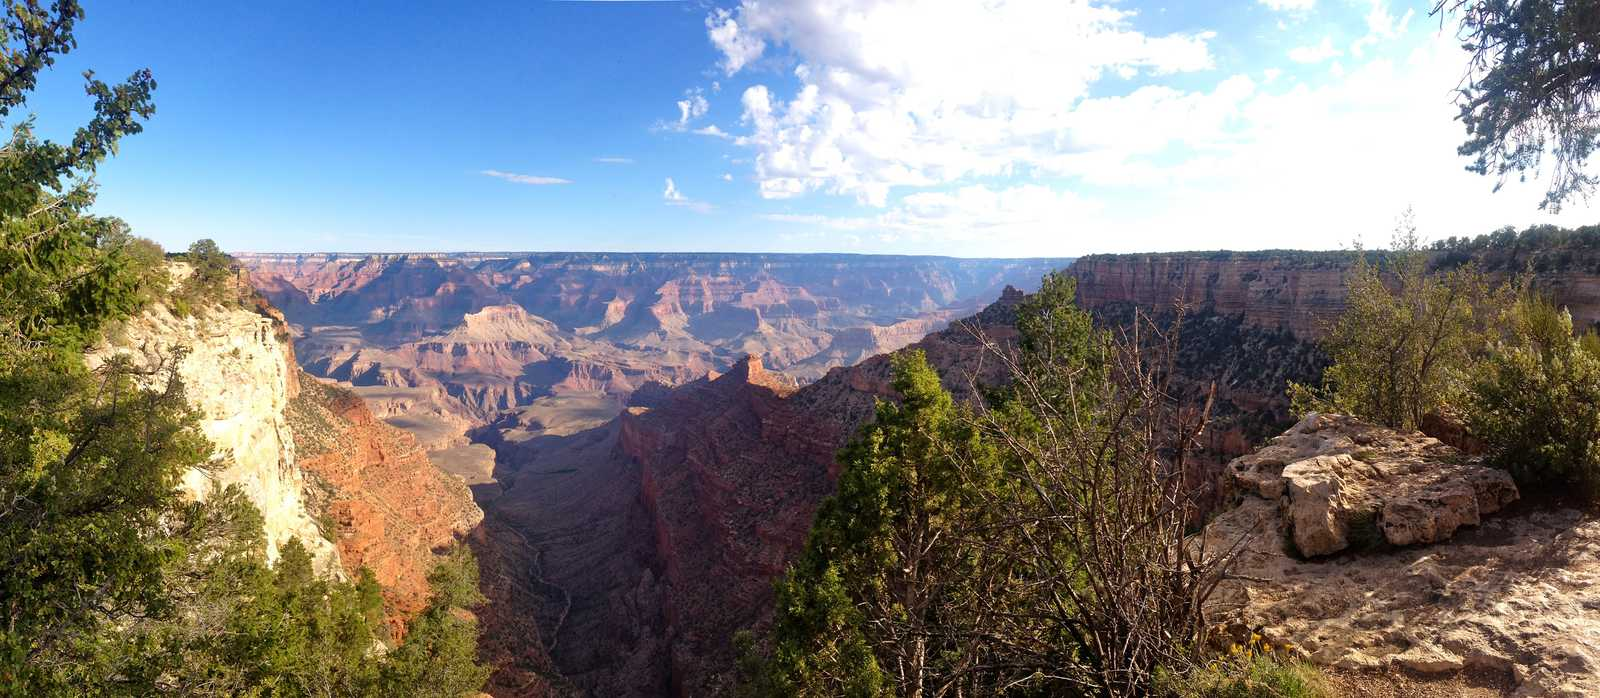 Grand Canyon Panoramablick